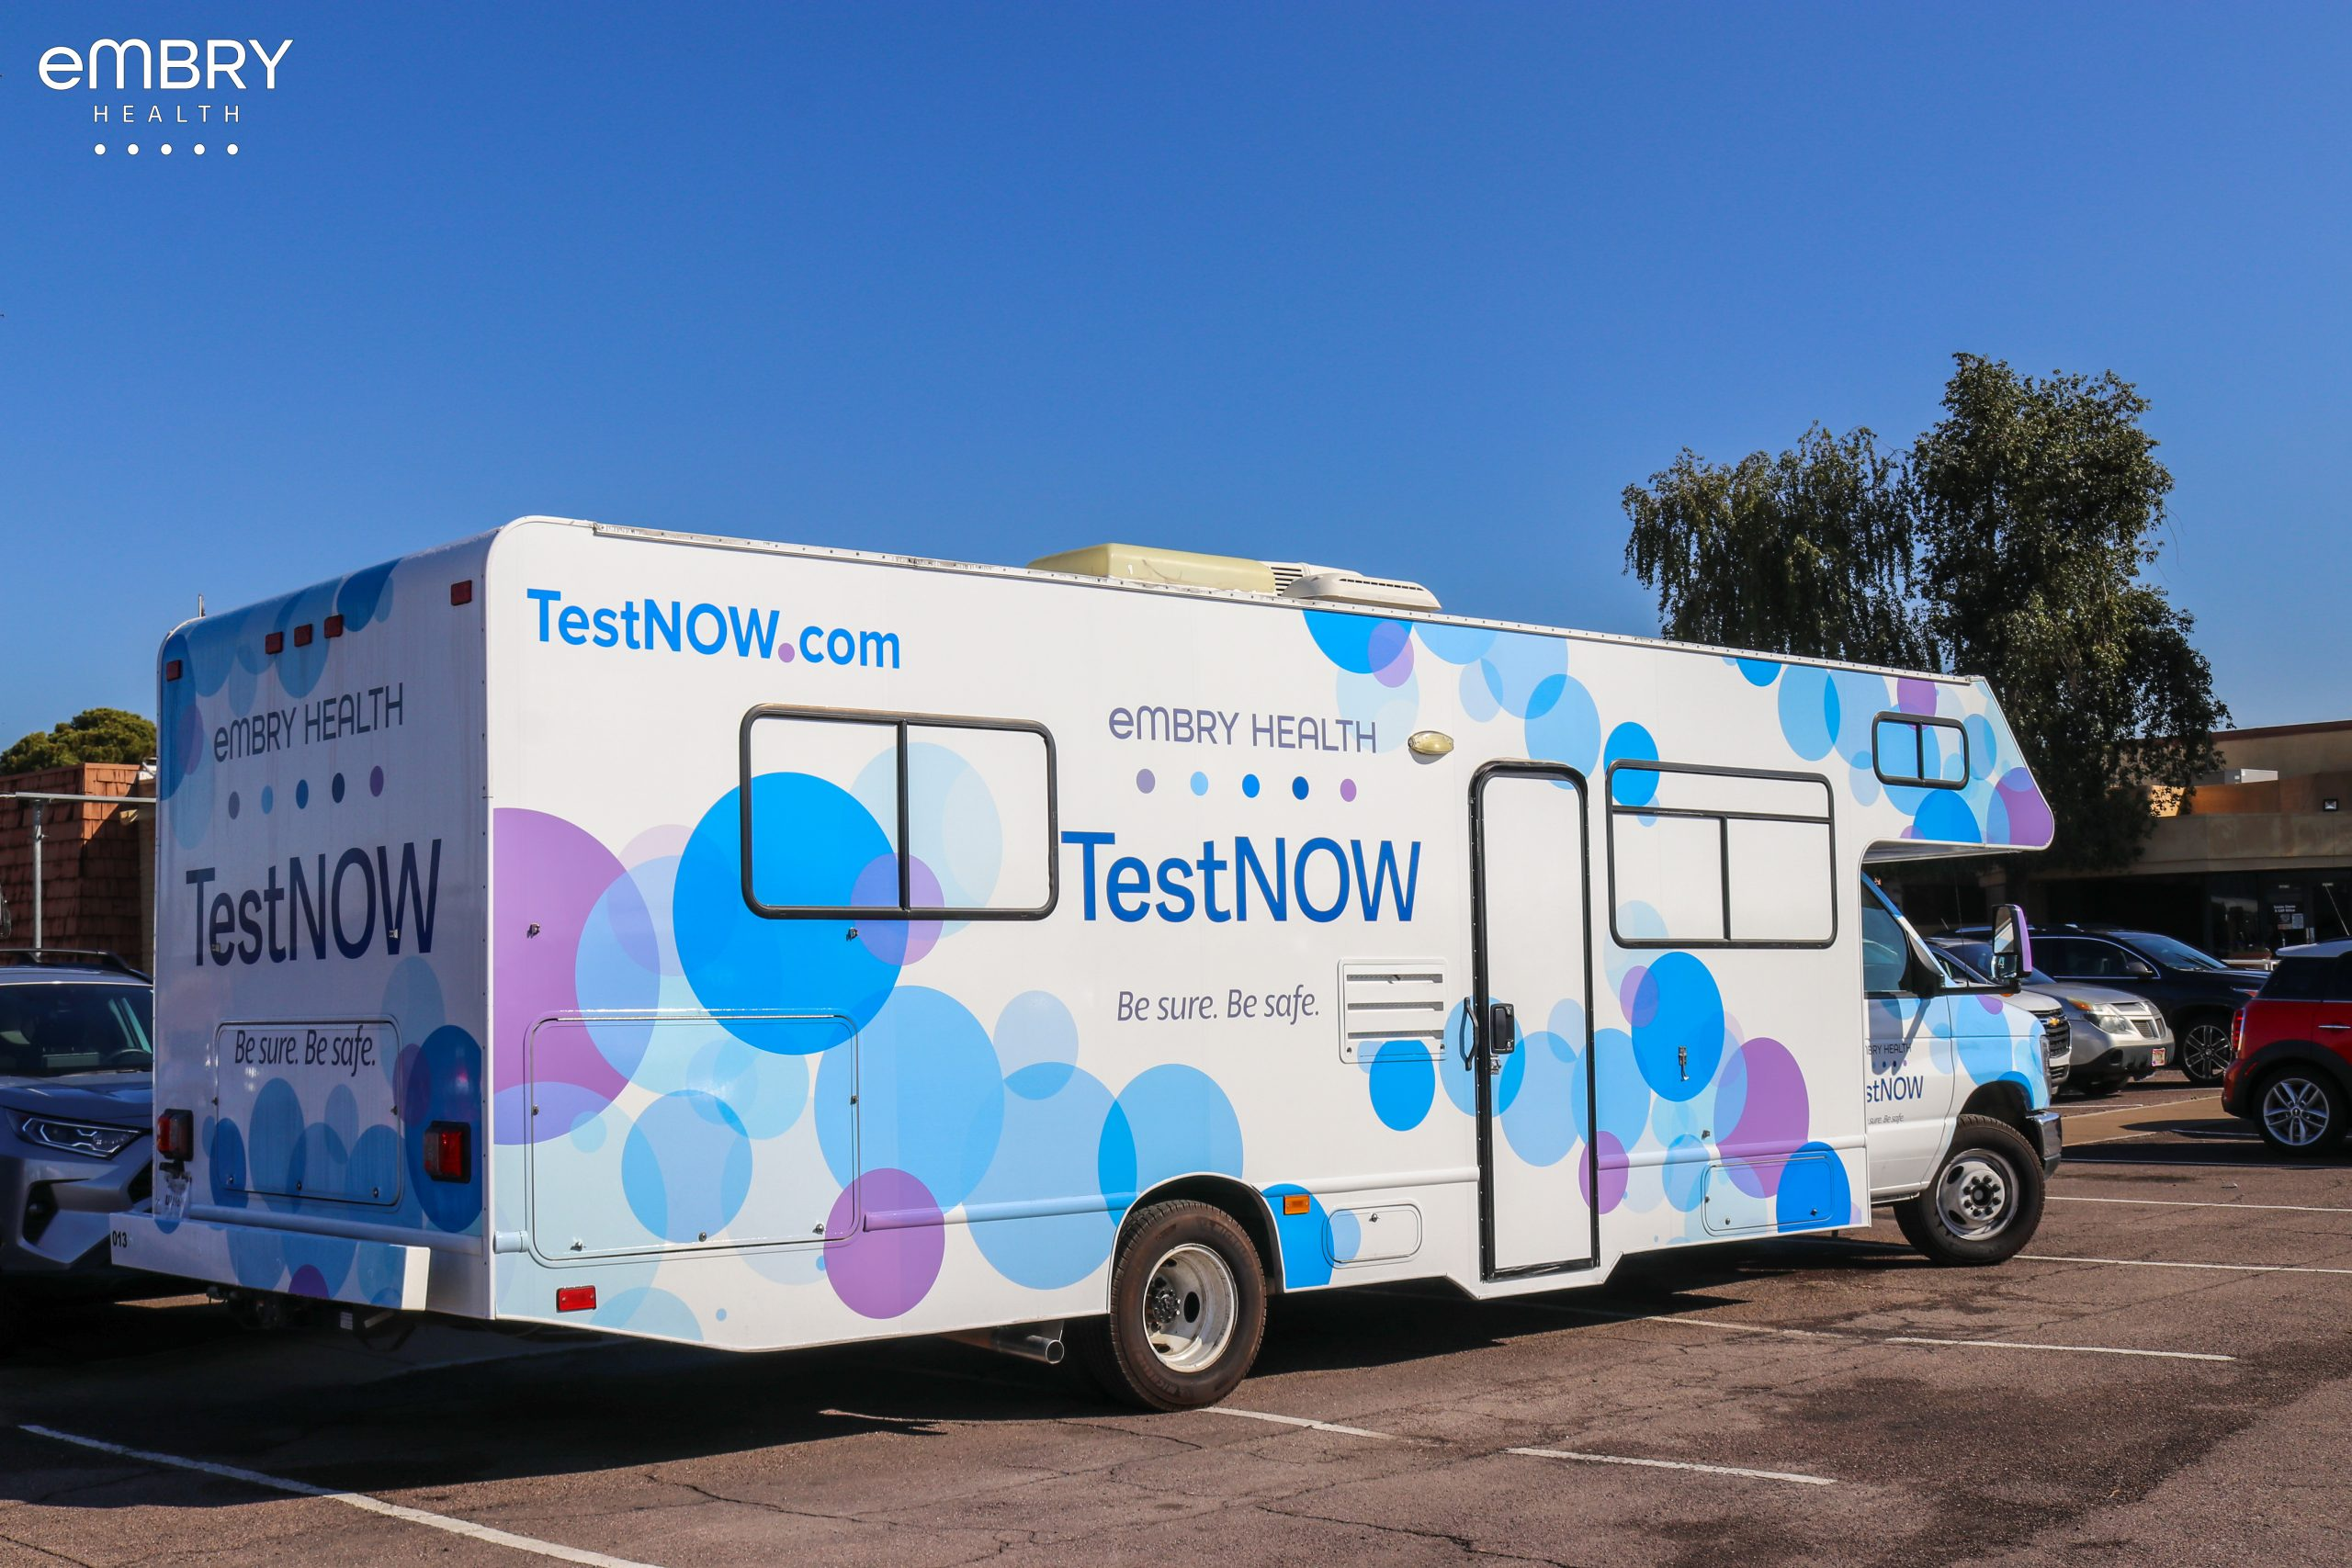 Embry Health now offers the convenience of a Mobile Testing Clinic. The flexibility and mobility allows Embry Health to rapidly increase free* COVID-19 and antibody test collection and expand offerings to include COVID-19 and free flu vaccinations.